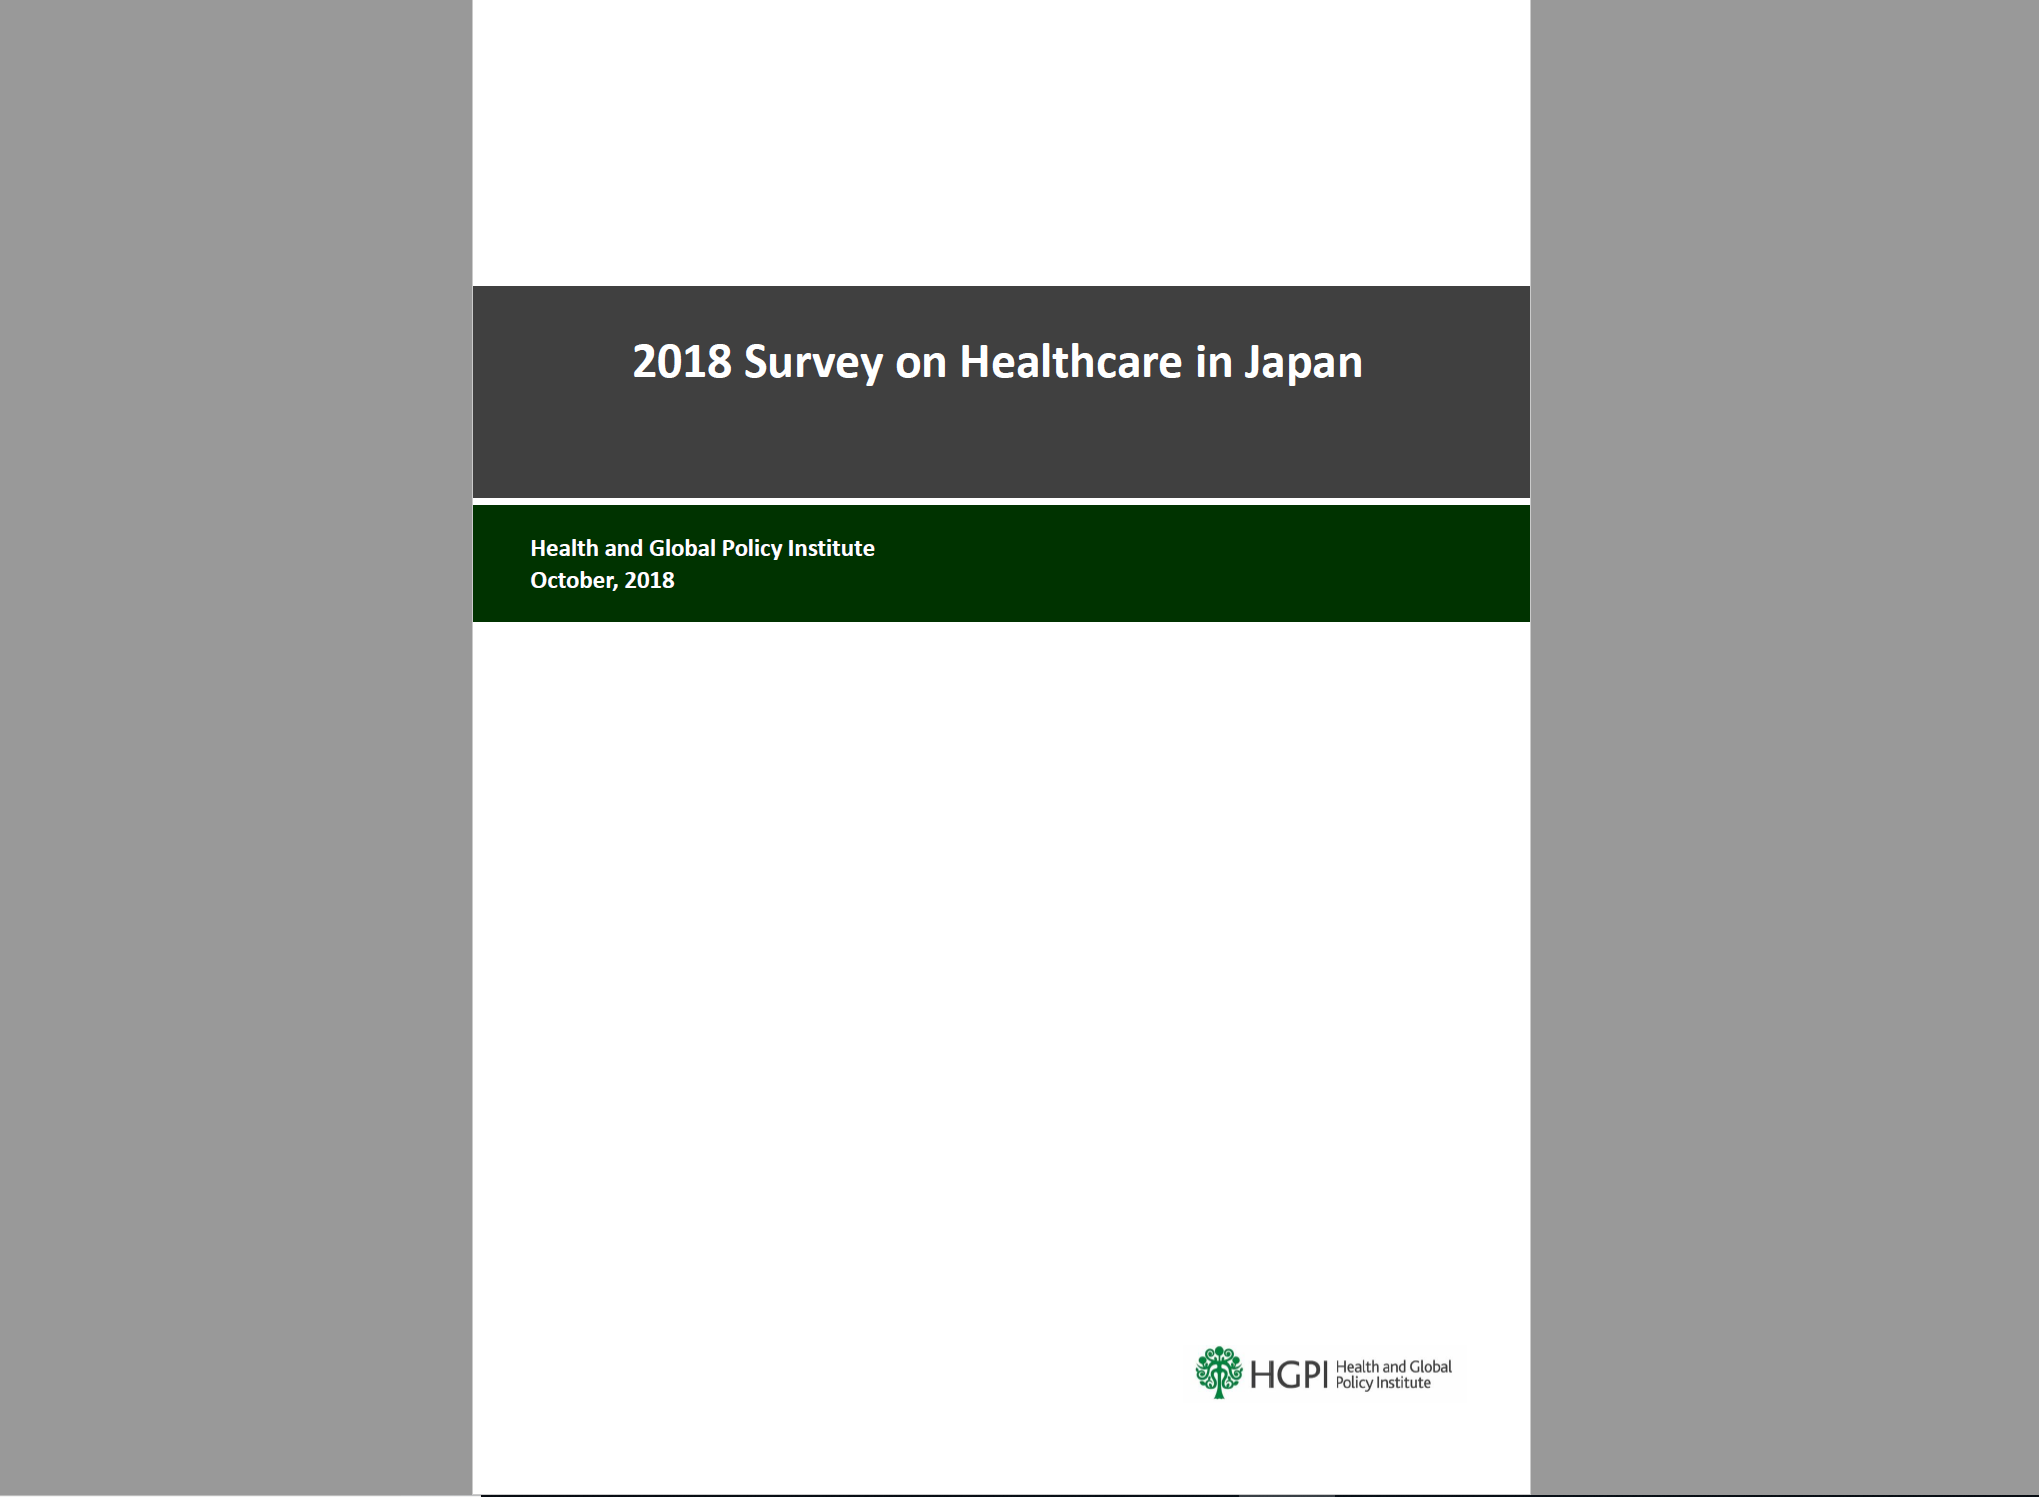 [Research Report] 2018 Survey on Healthcare in Japan